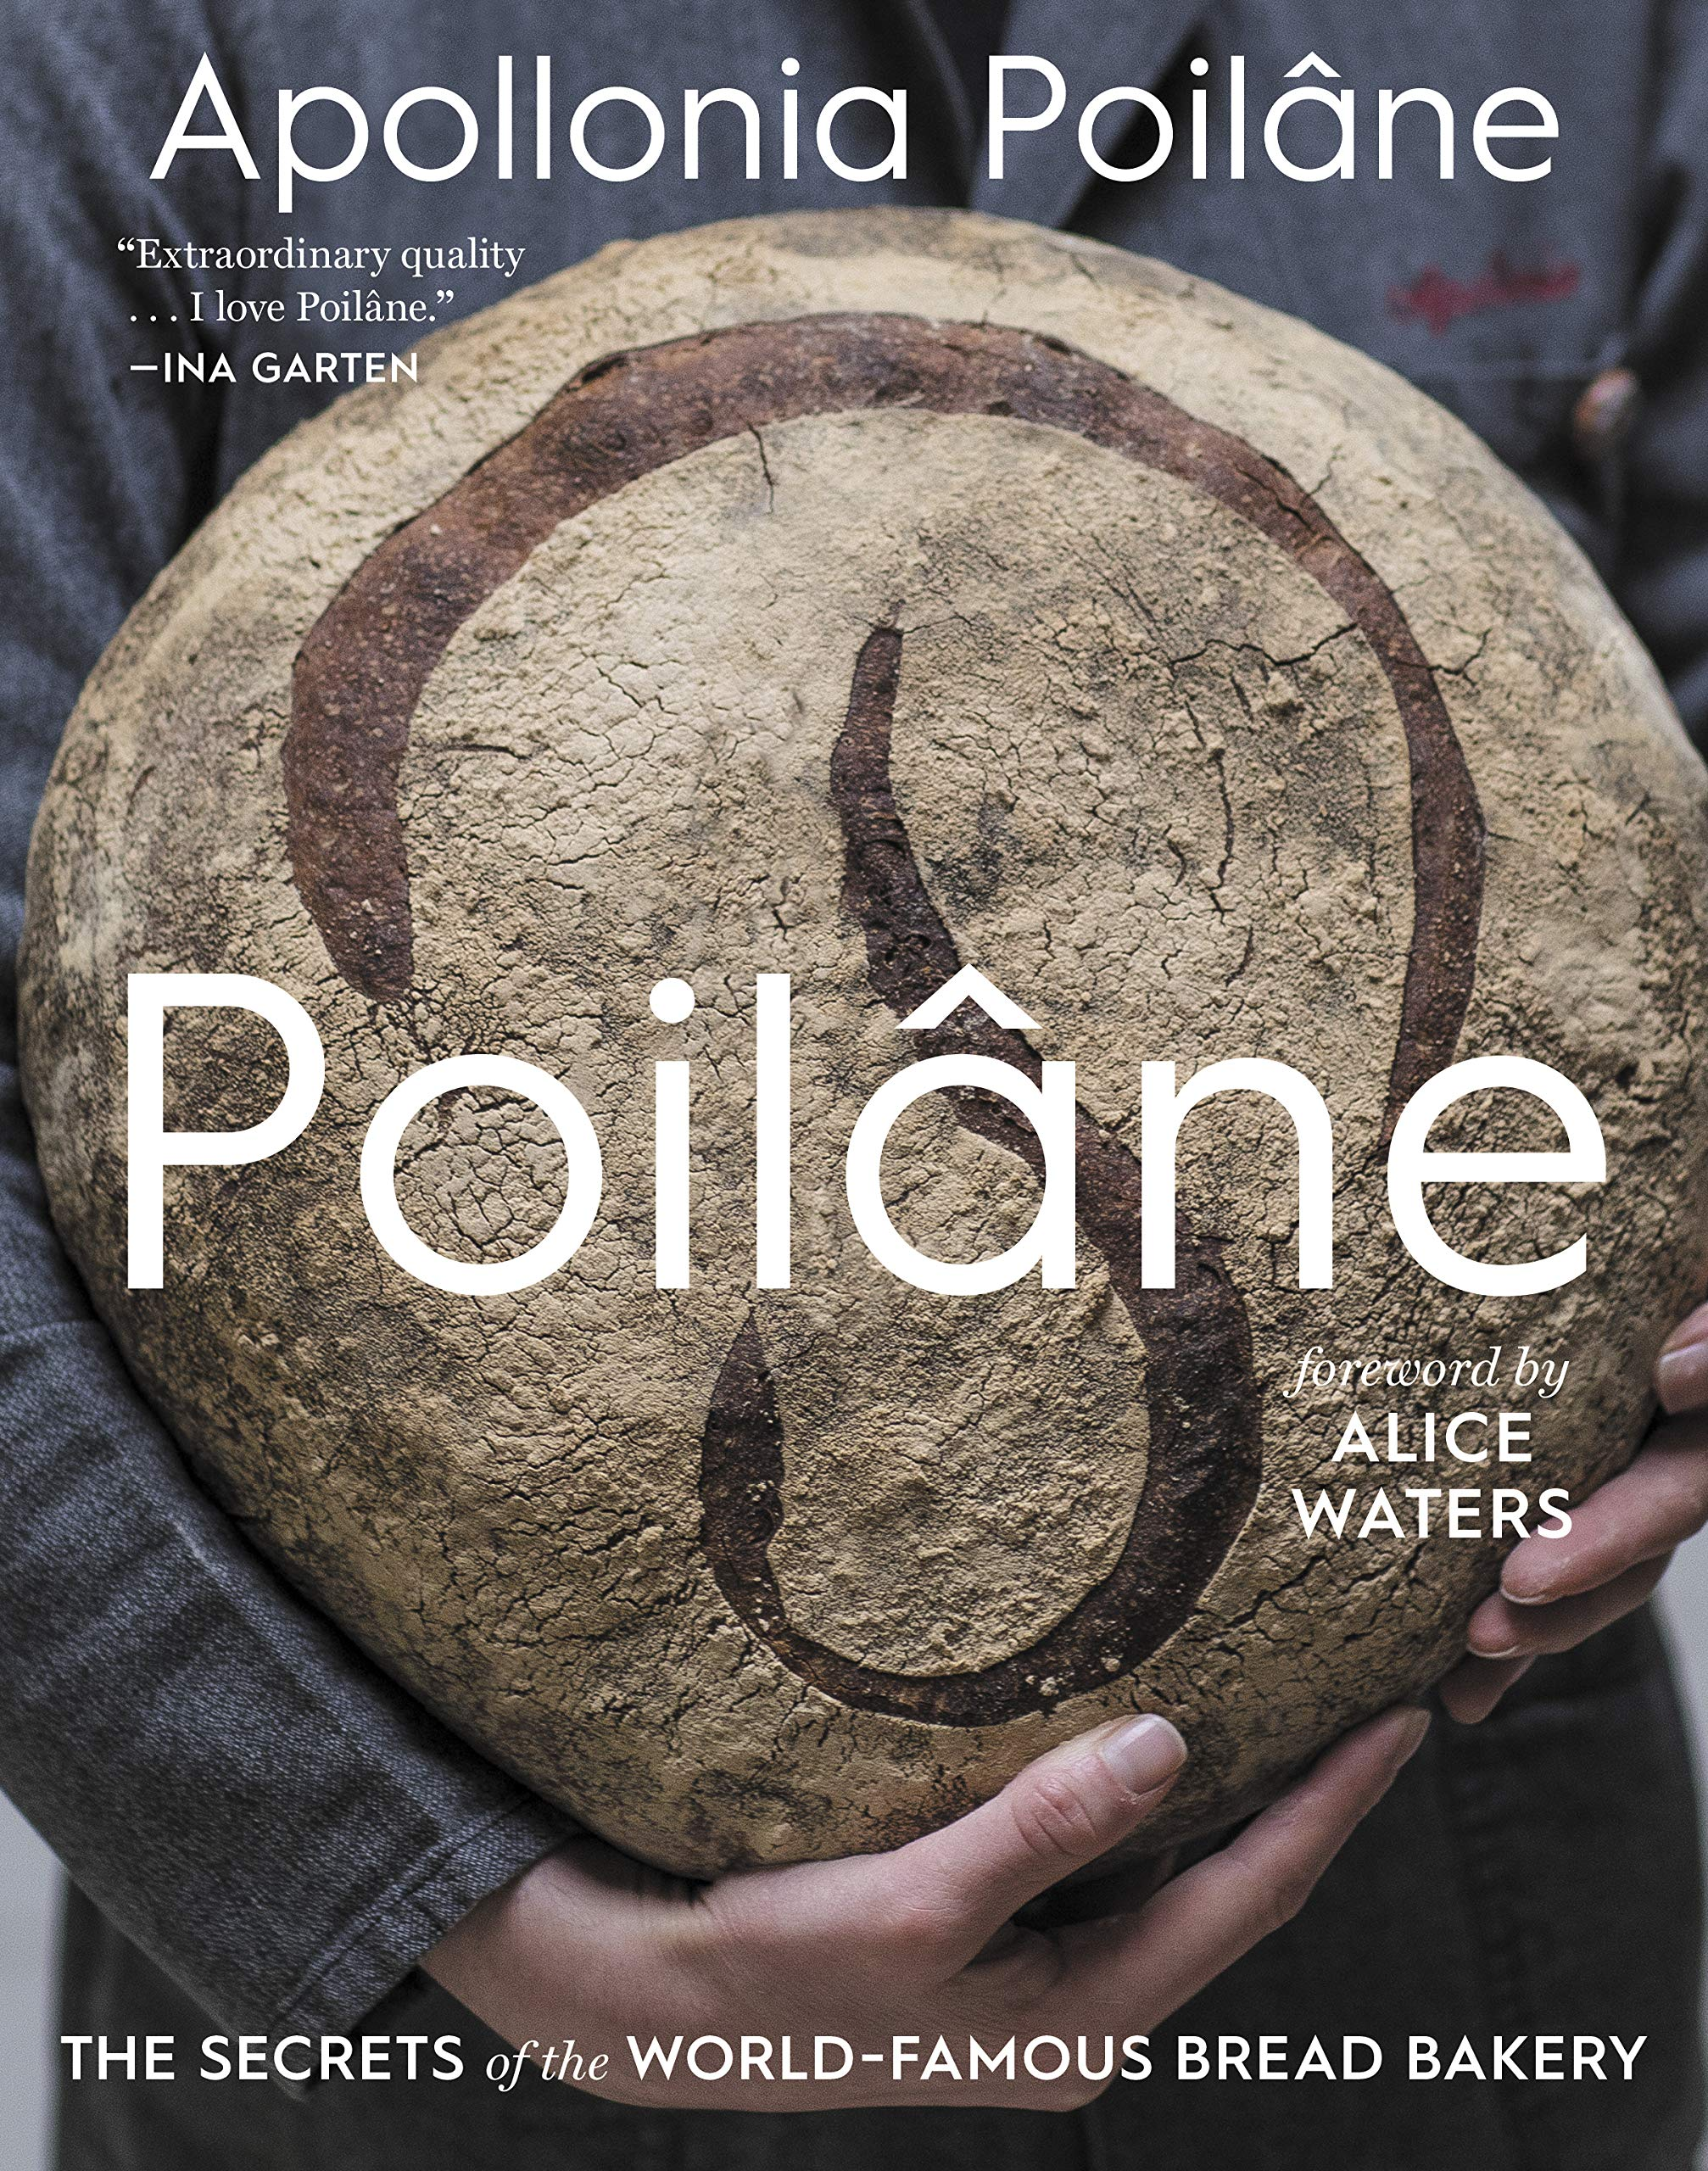 BUY this book: Poilâne: The Secrets of the World-Famous Bread Bakery